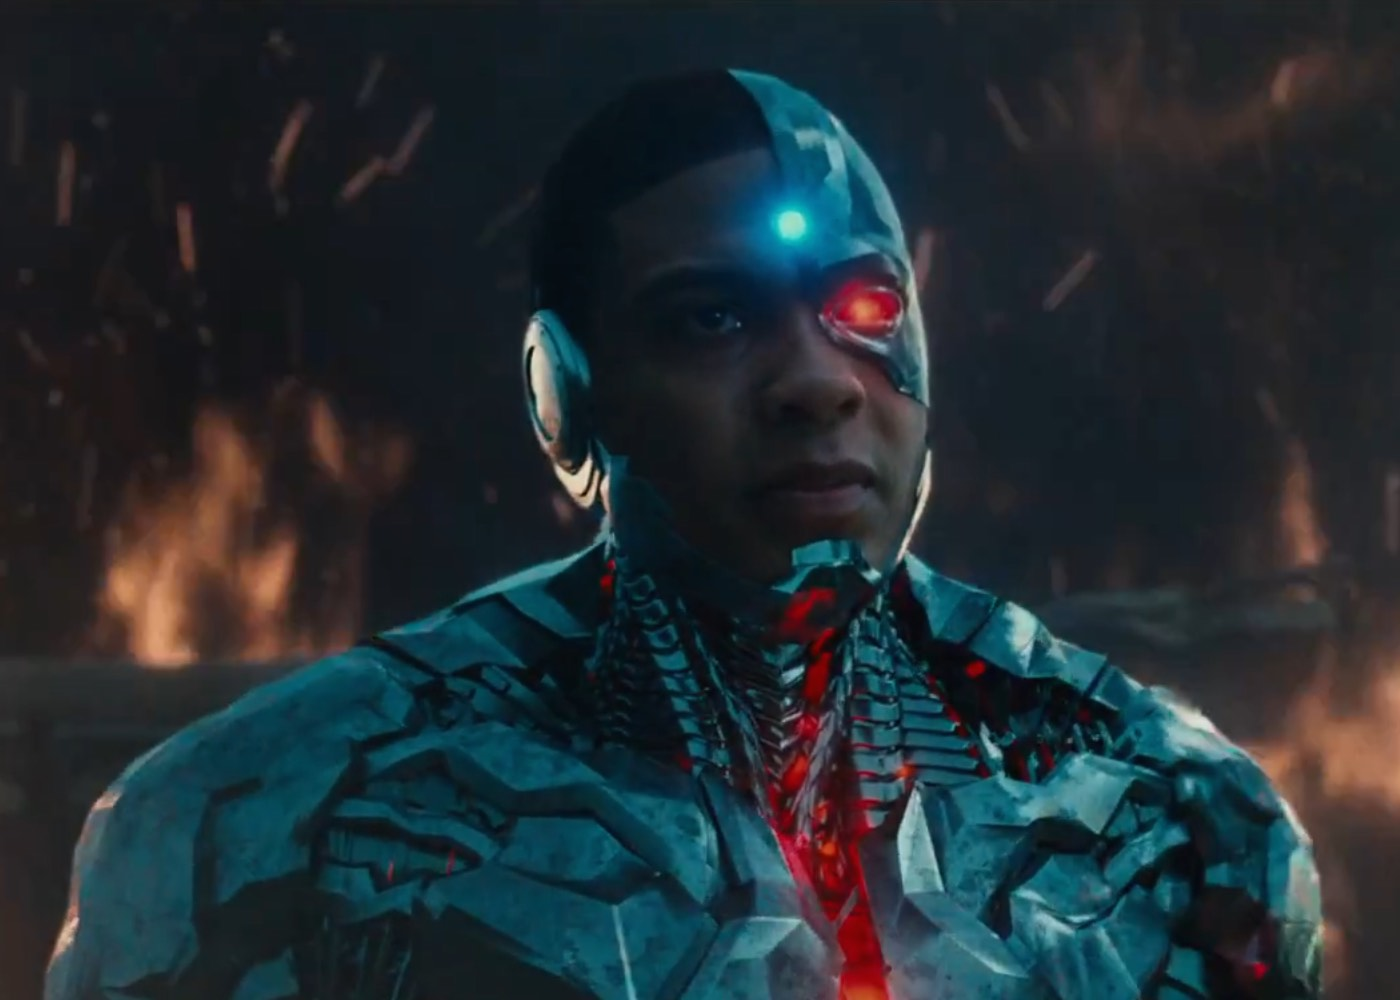 Cyborg's Solo Still Set to Release in 2020